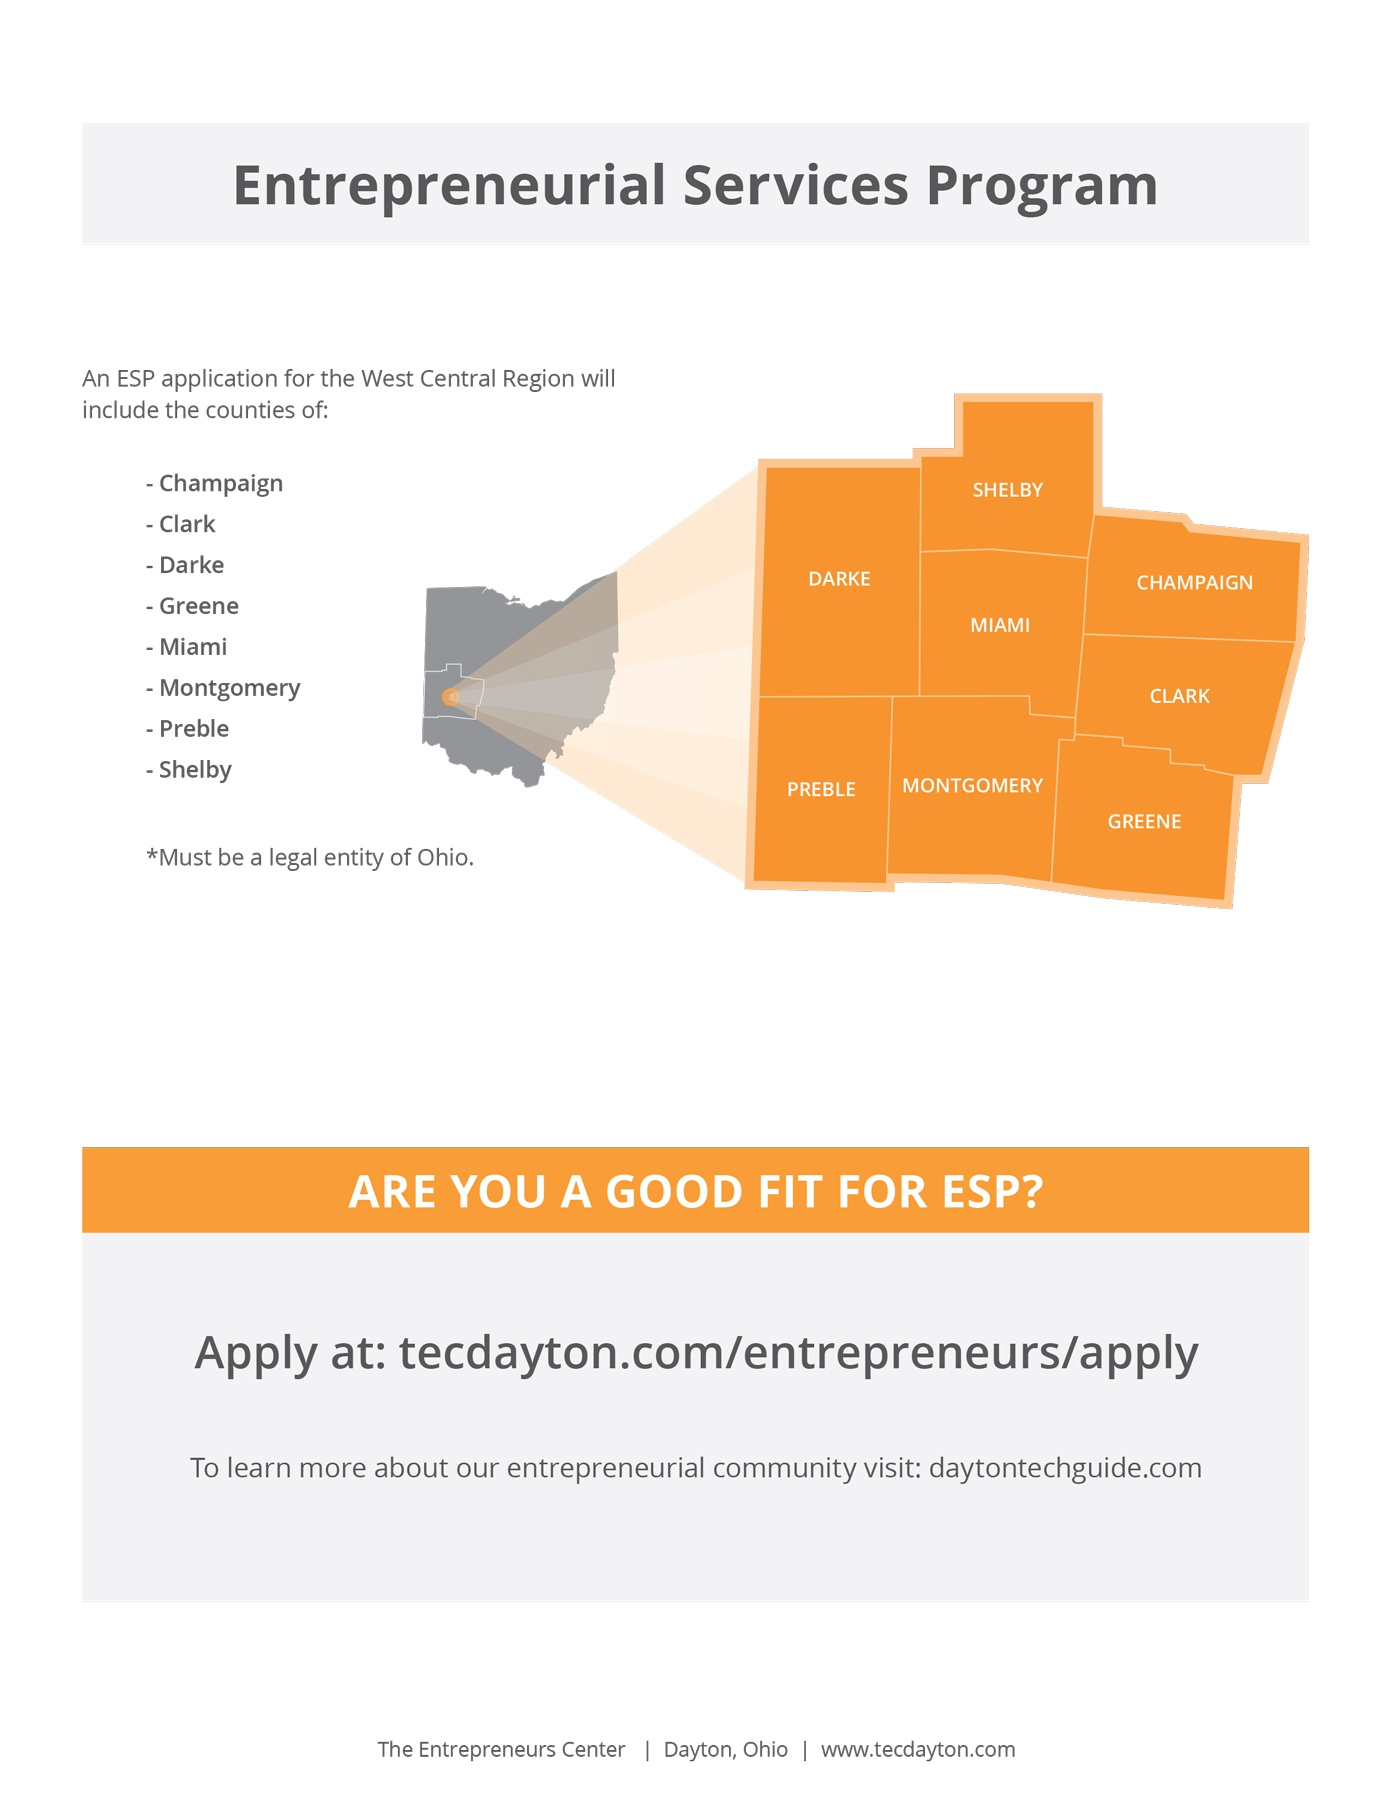 A graphic for the Entrepreneurial Services program identifying what counties are accepted